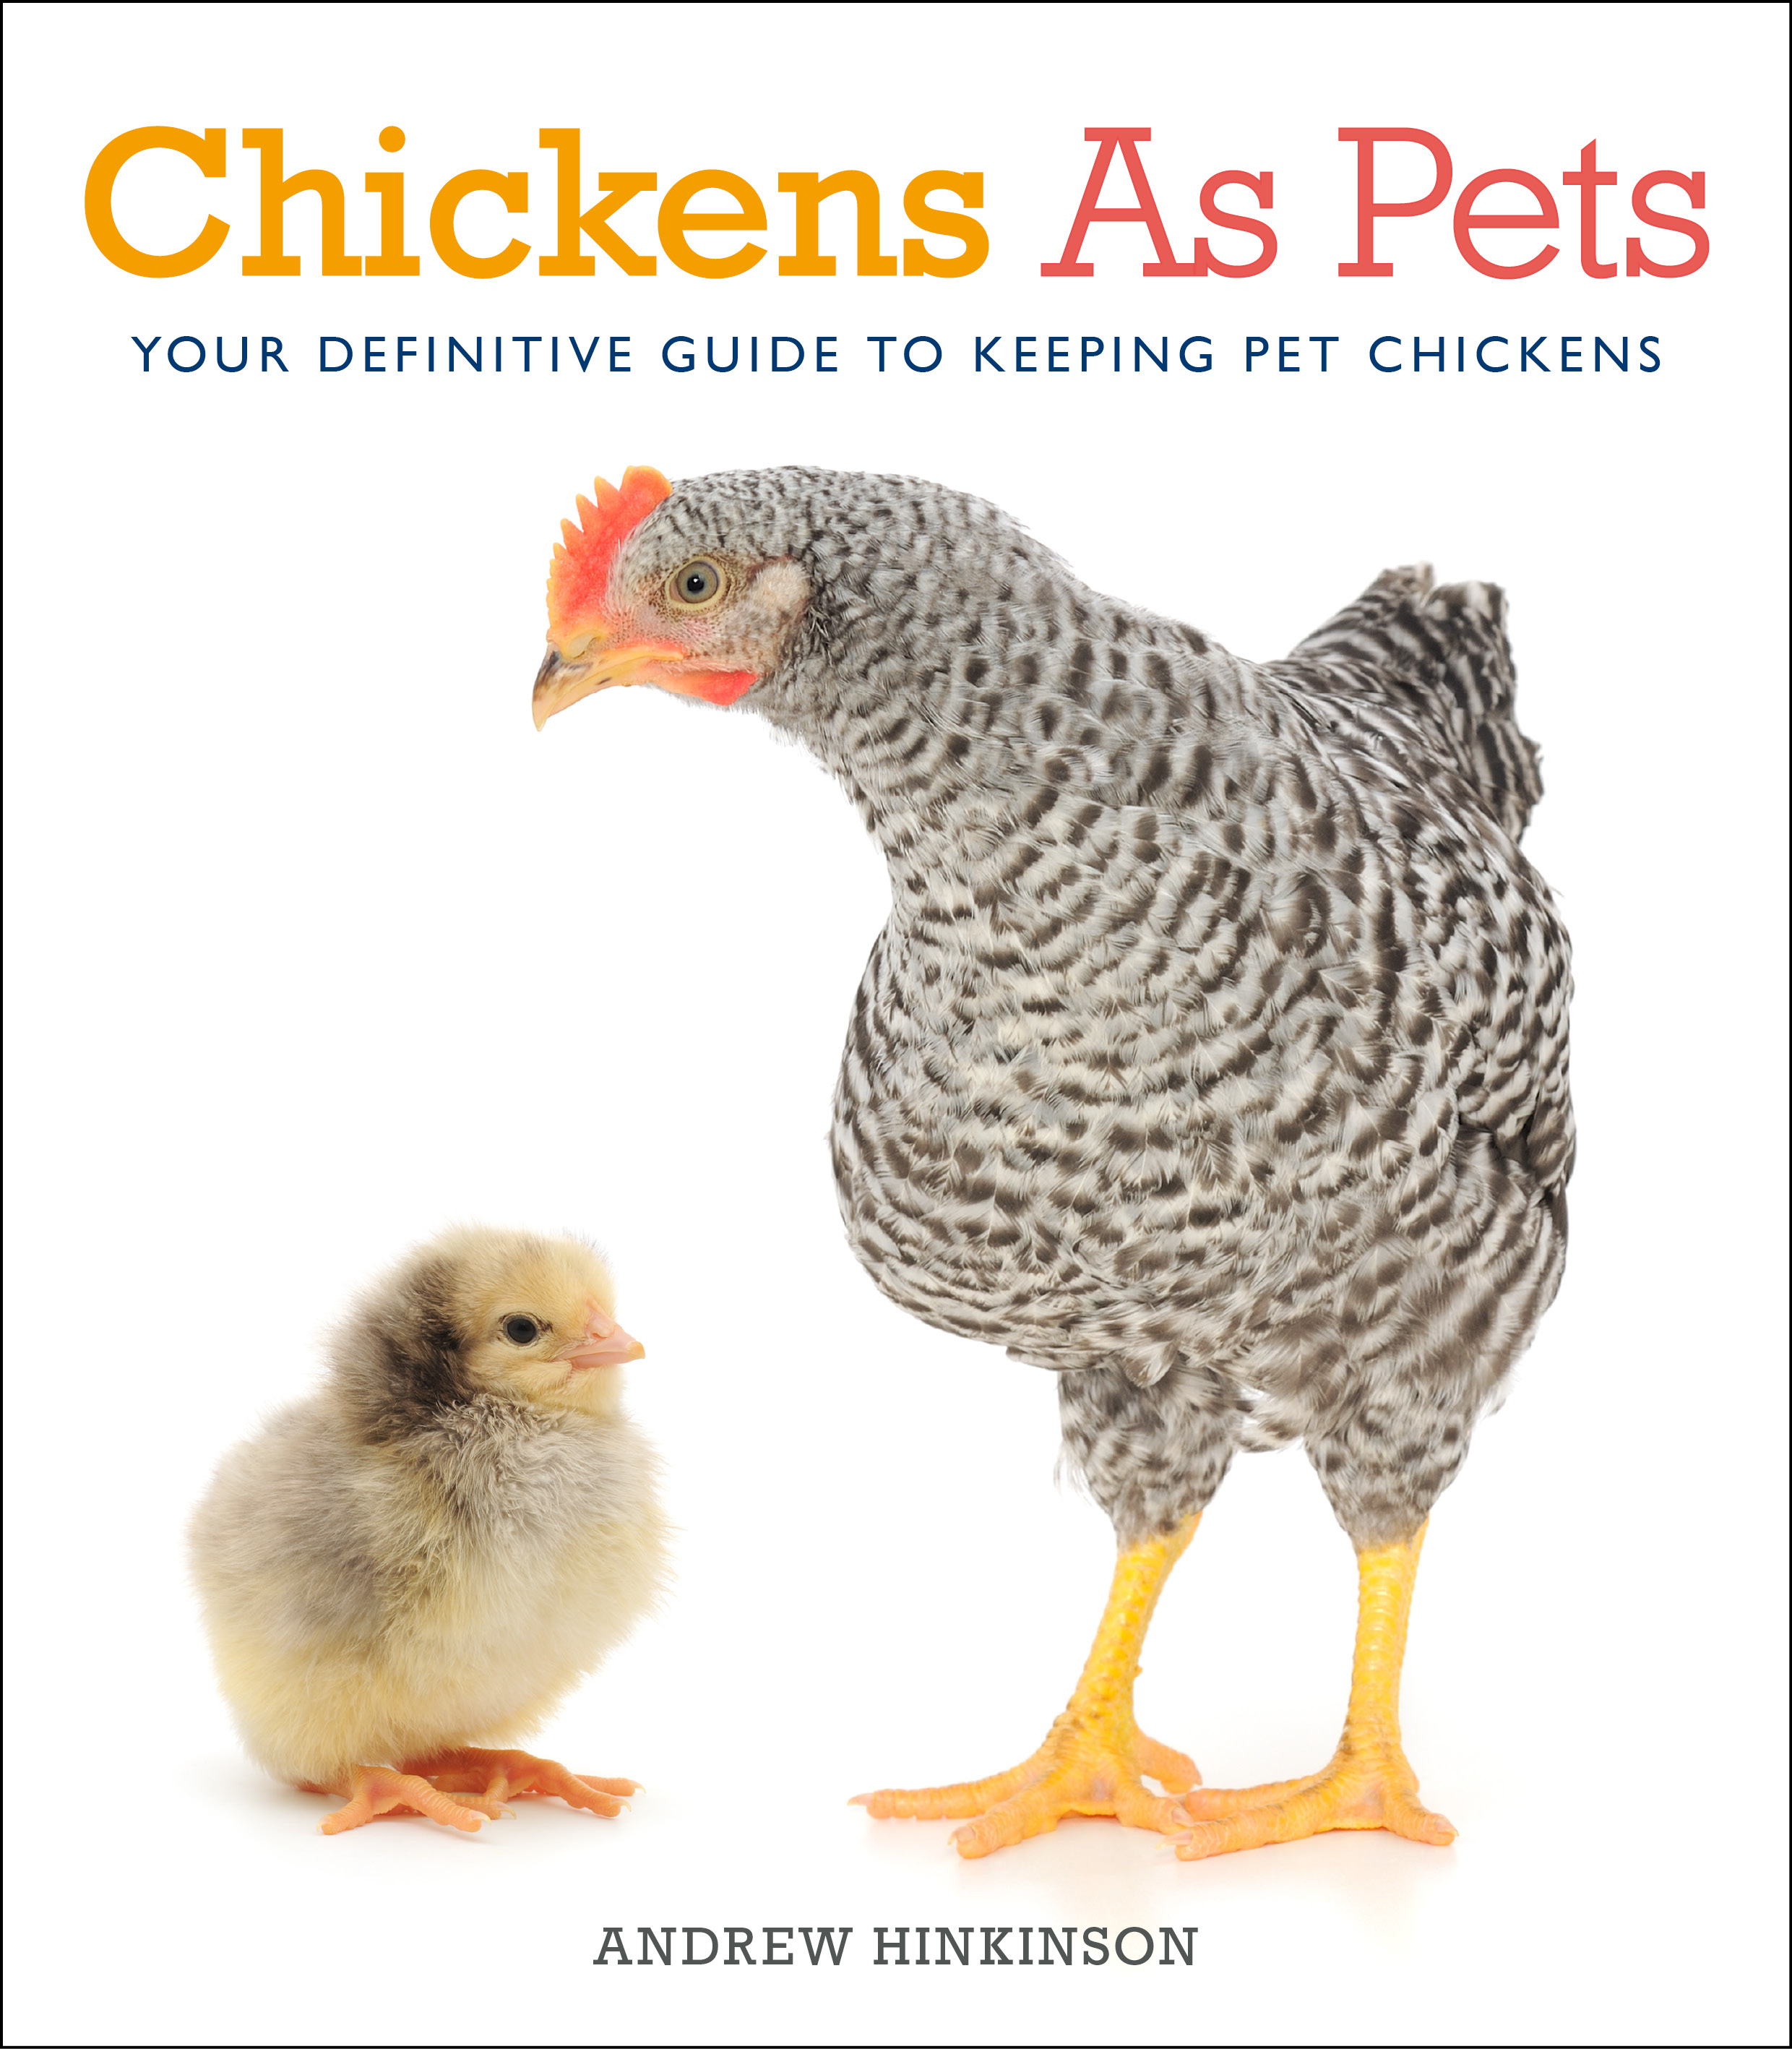 Chickens As Pets Your definitive guide to keeping pet chickens